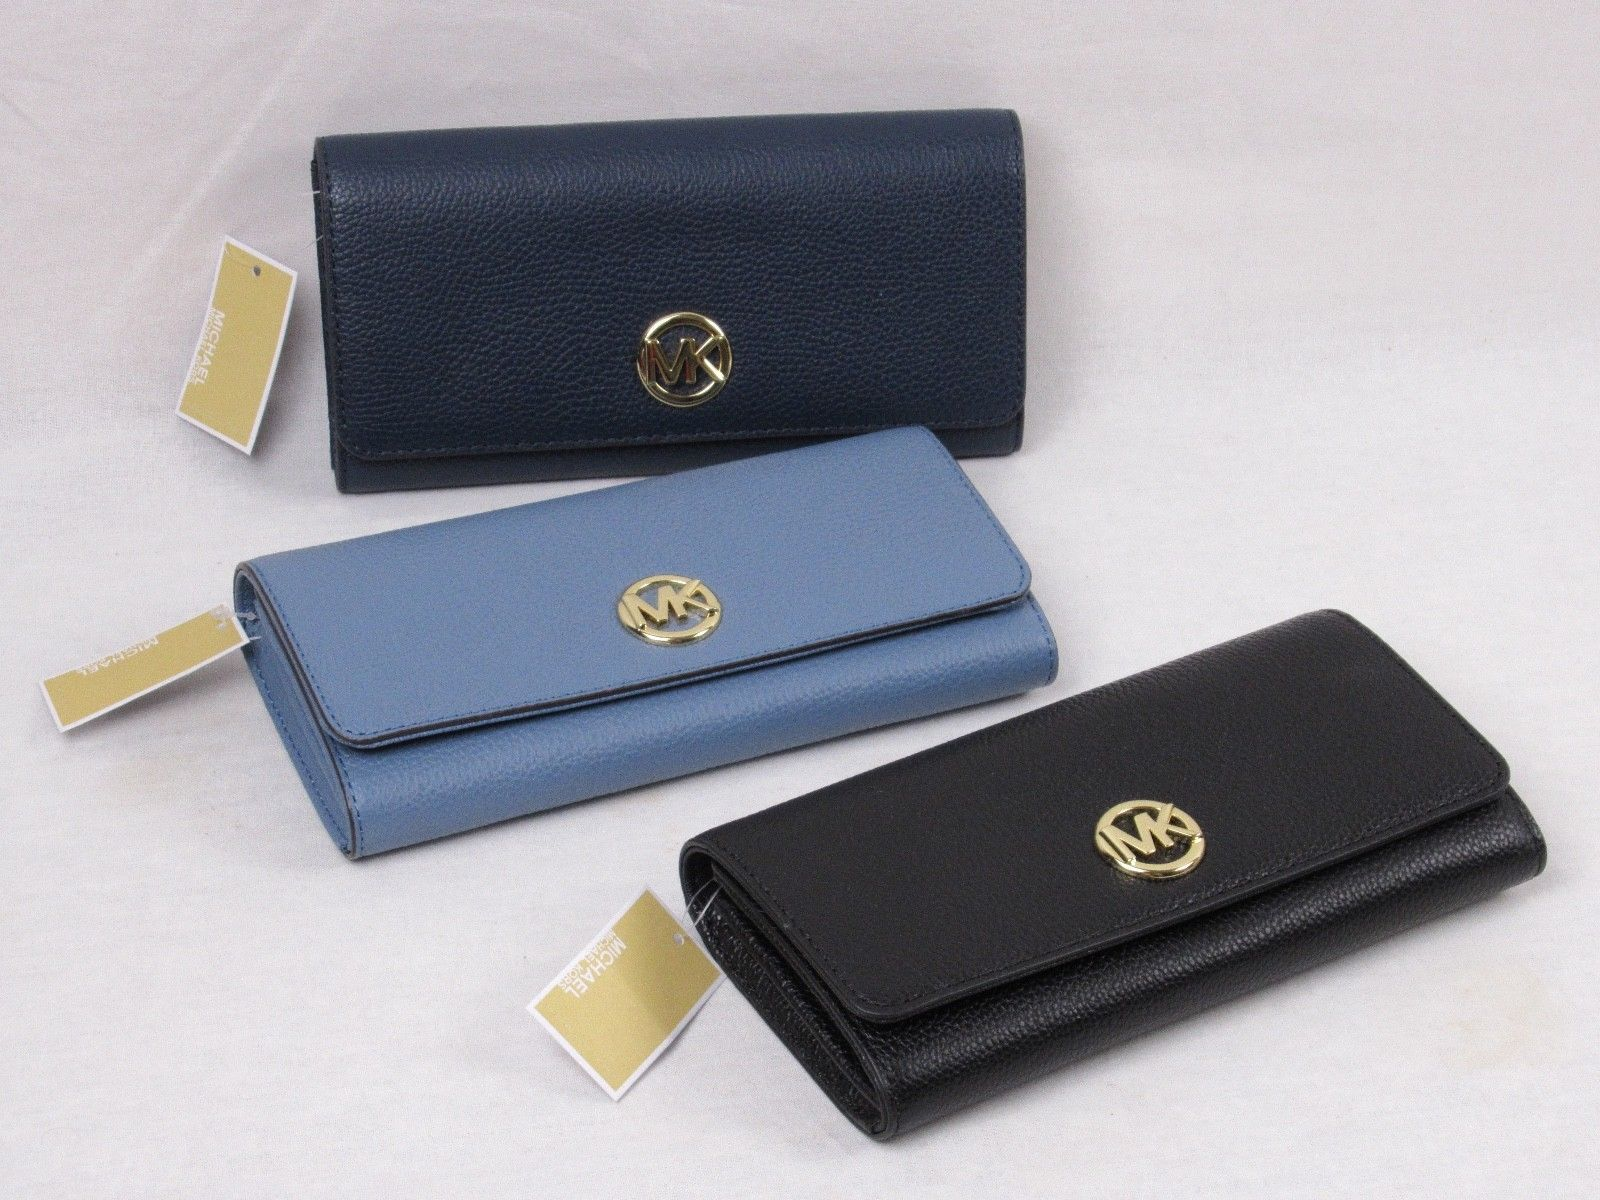 d269b84307cb 57. 57. Previous. MICHAEL KORS NEW PEBBLED LEATHER FULTON FLAP CONTINENTAL  WALLET VARIOUS COLORS